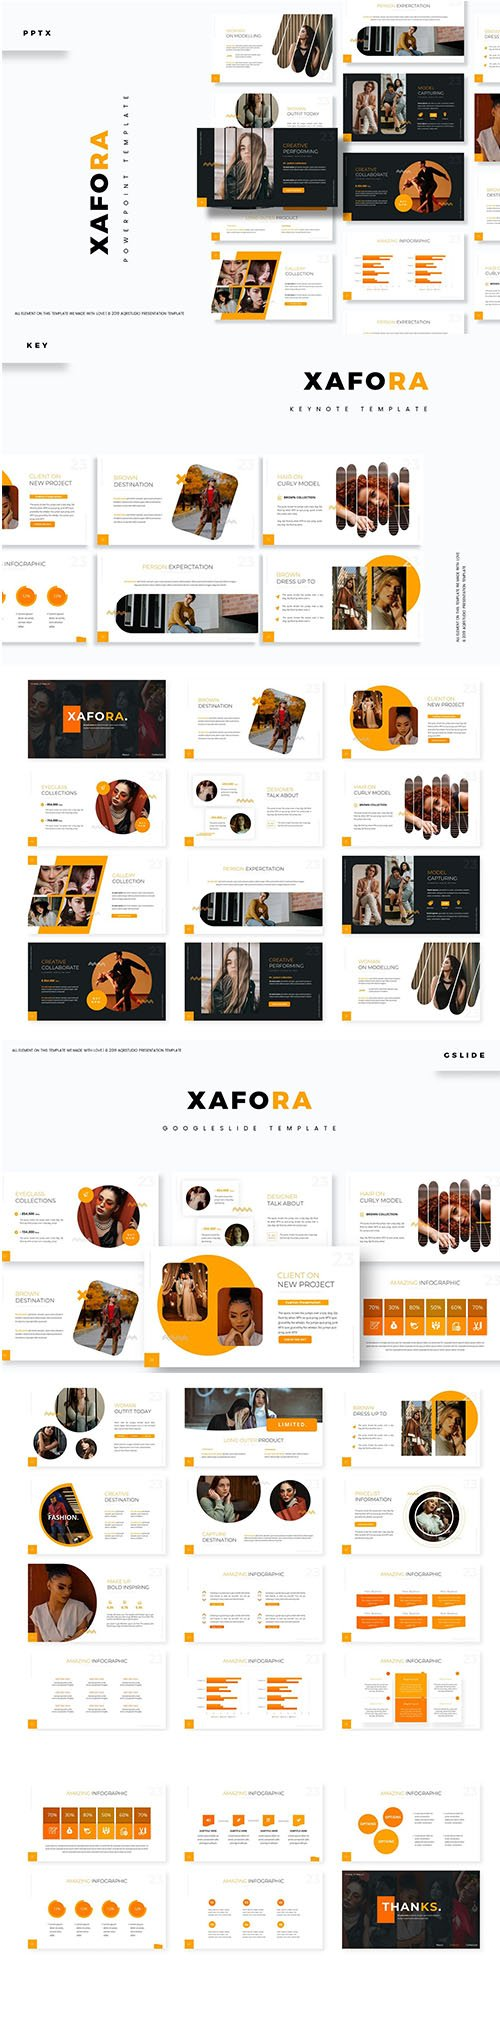 Xafora Powerpoint, Keynote and Google Slide Template